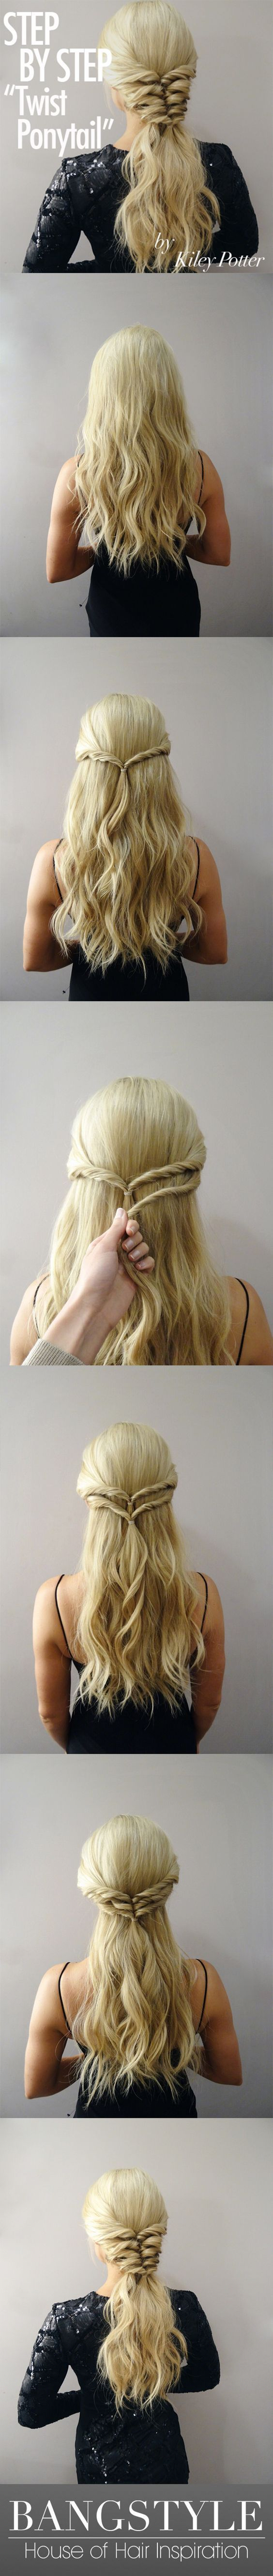 cool 20 Simple and Easy Hairstyle Tutorials For Your Daily Look! - Trend To Wear